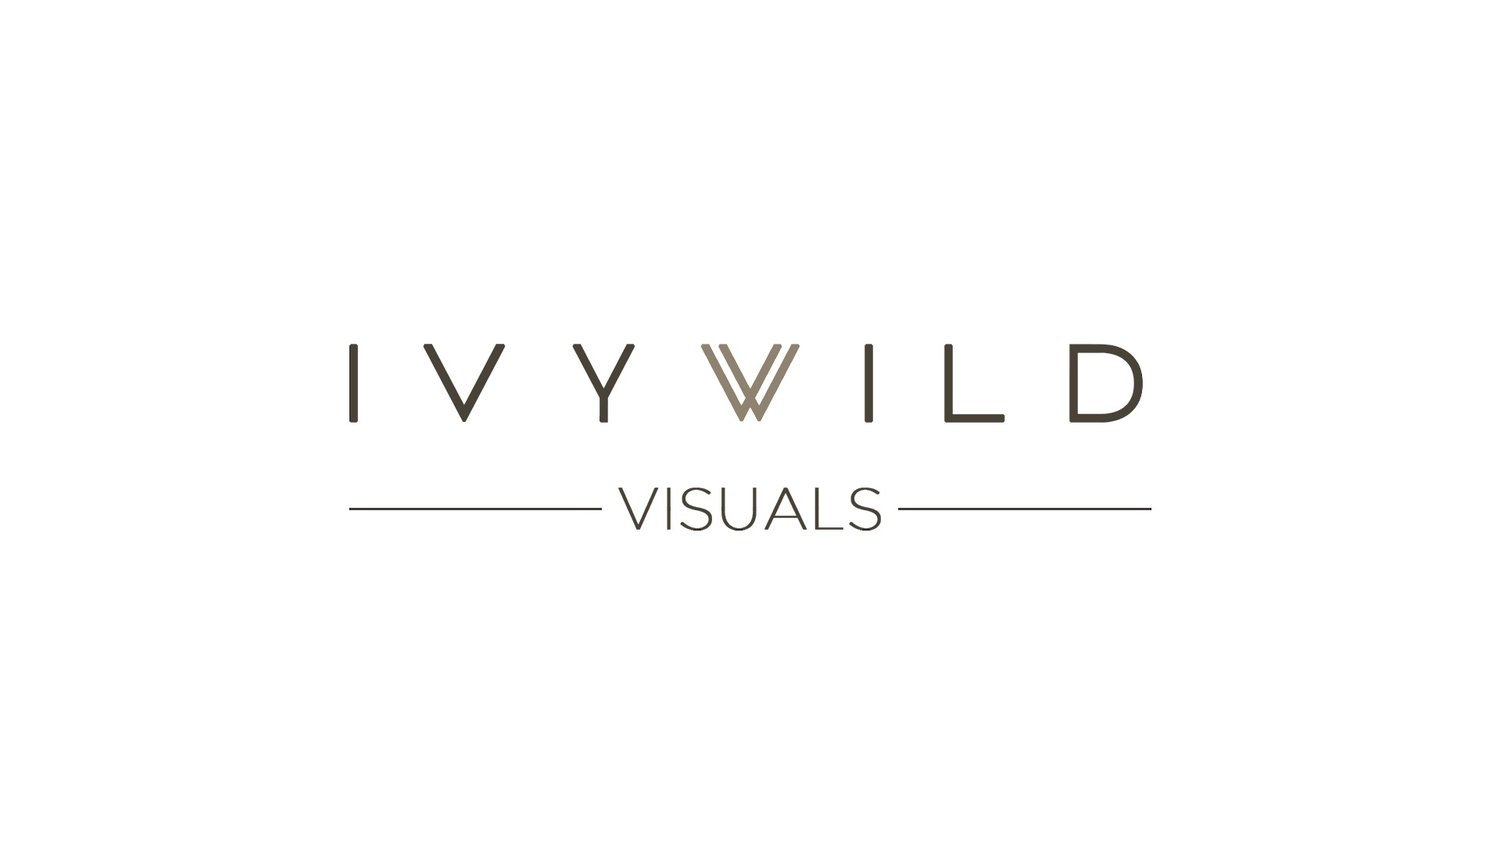 IVYWILD VISUALS